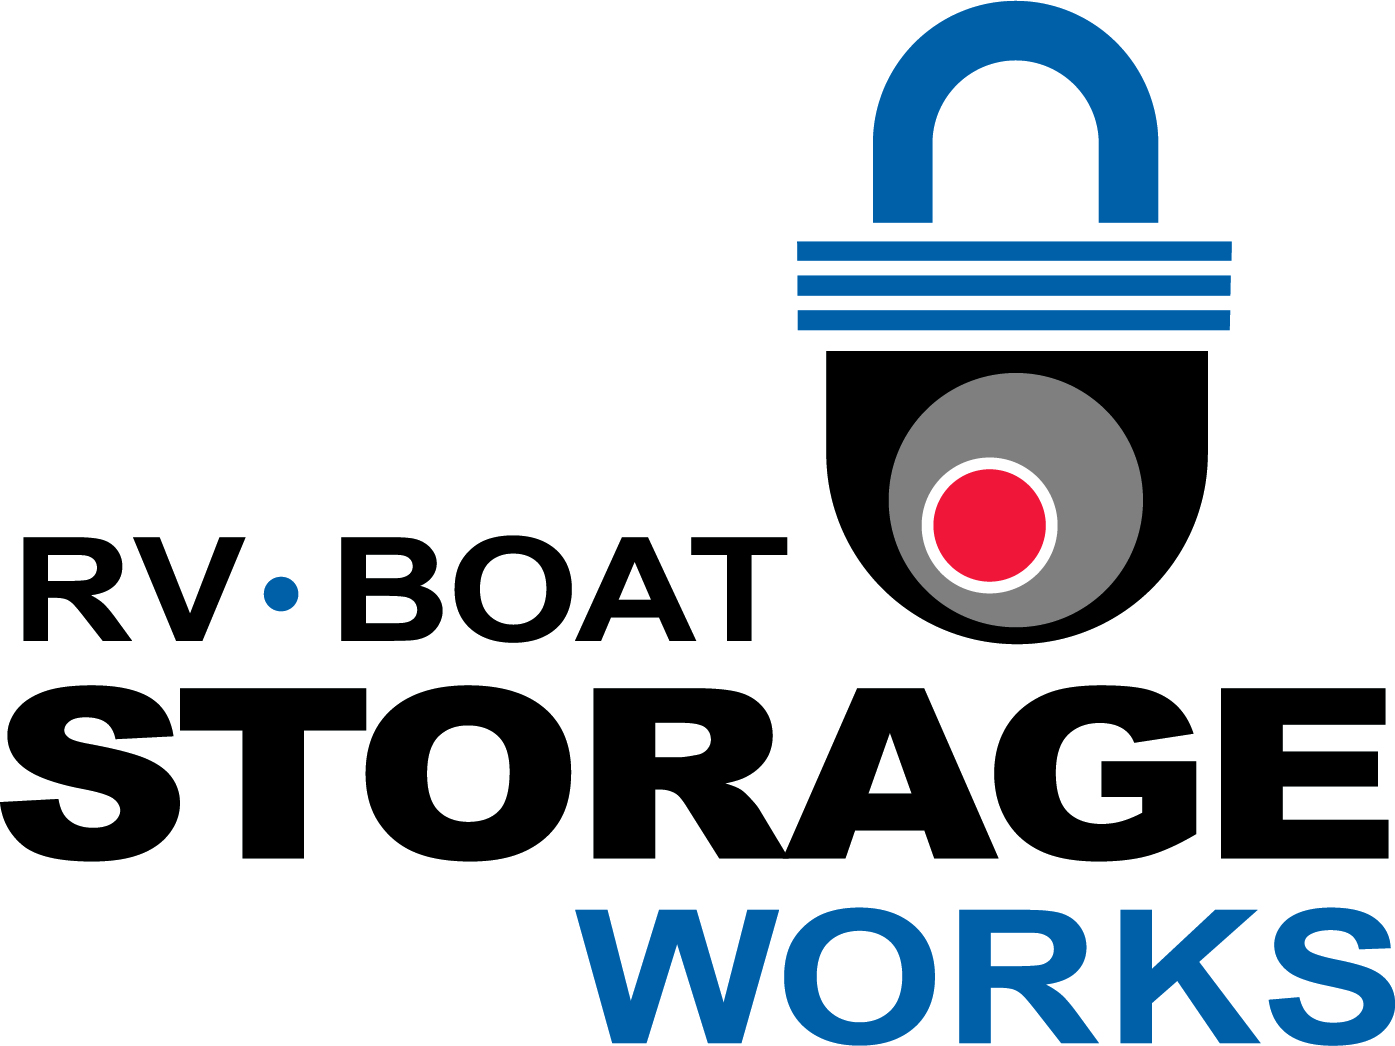 rv boat storage works in Fort Myers, FL